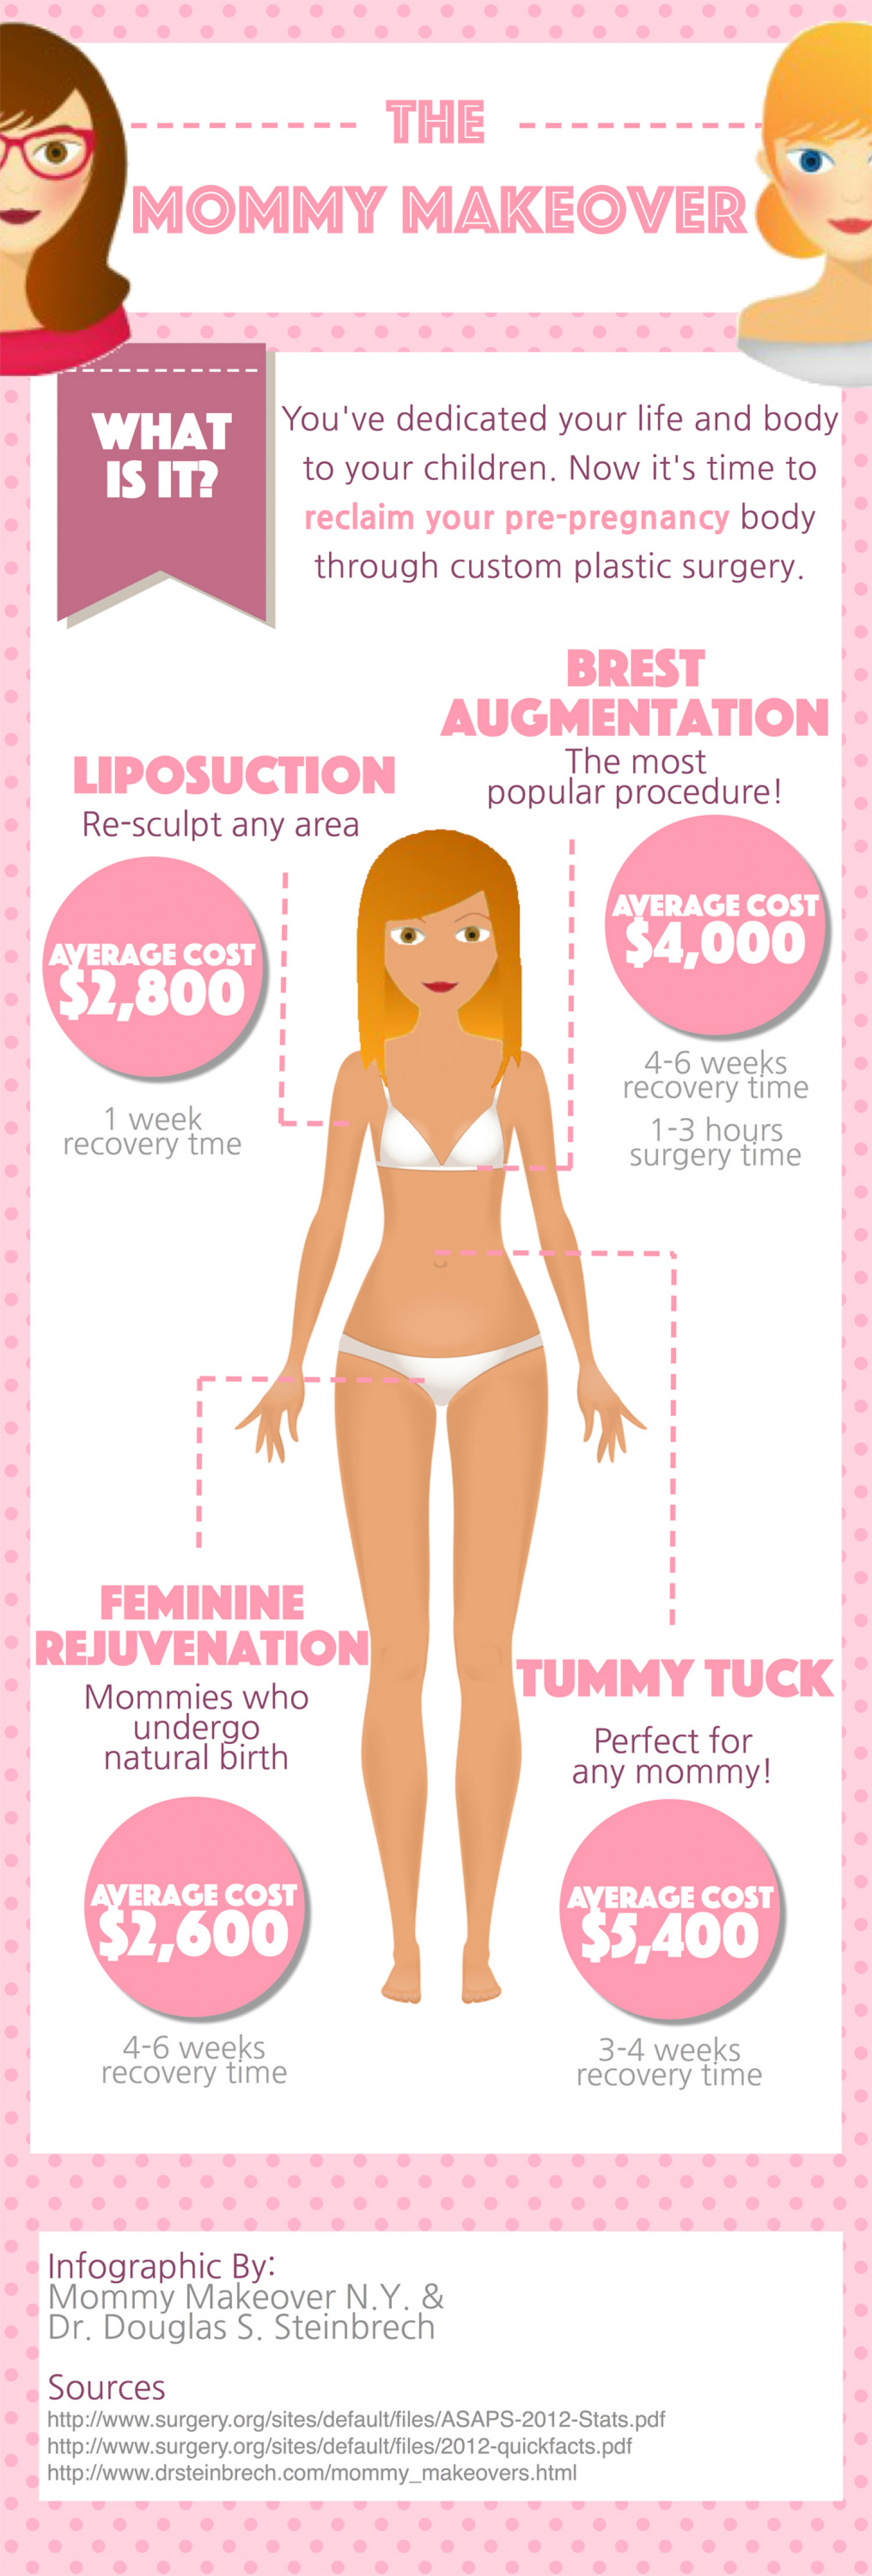 Mommy Makeover Infographic | Visual ly